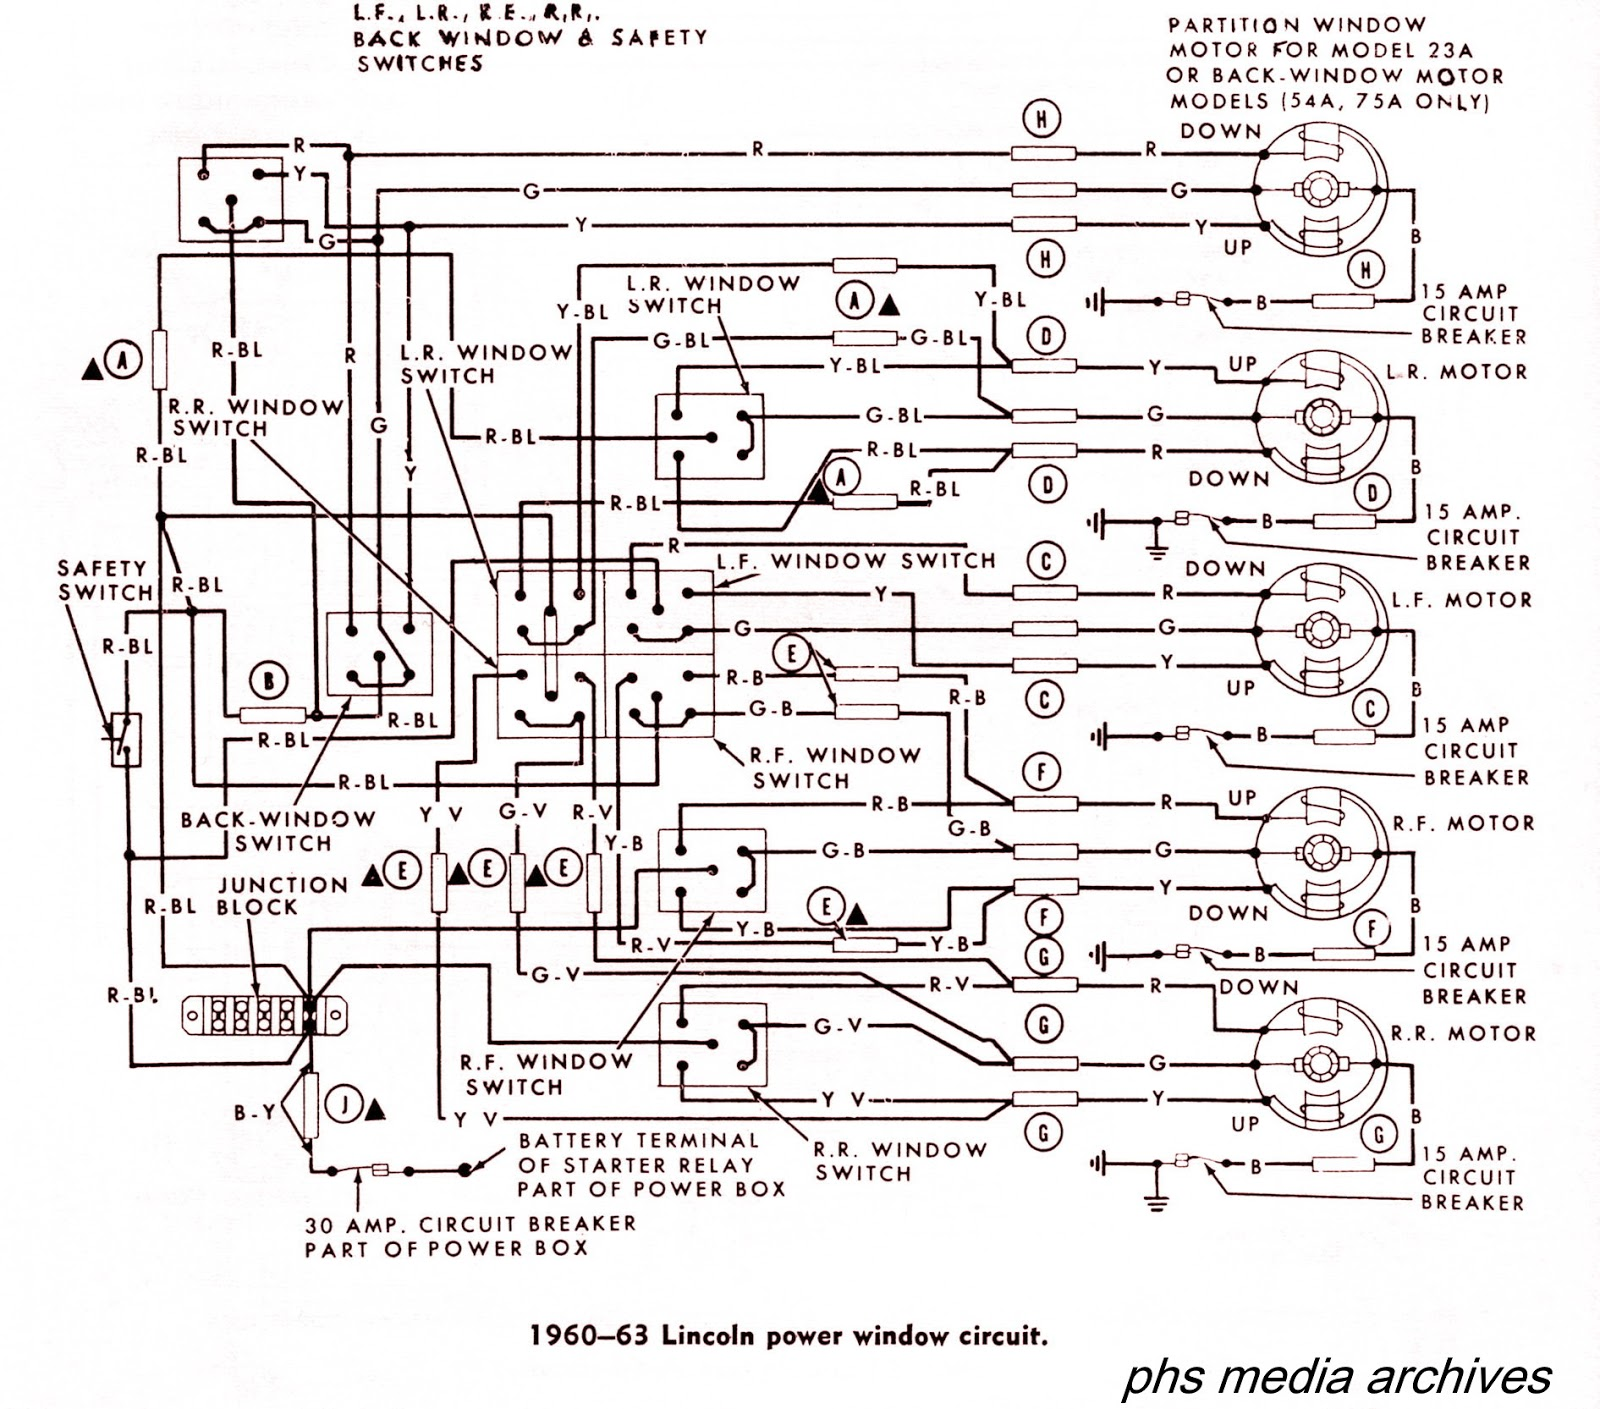 hight resolution of tech series 1960 1964 lincoln wiring diagrams phscollectorcarworld lincoln mark 8 wiring diagram lincoln wiring diagrams